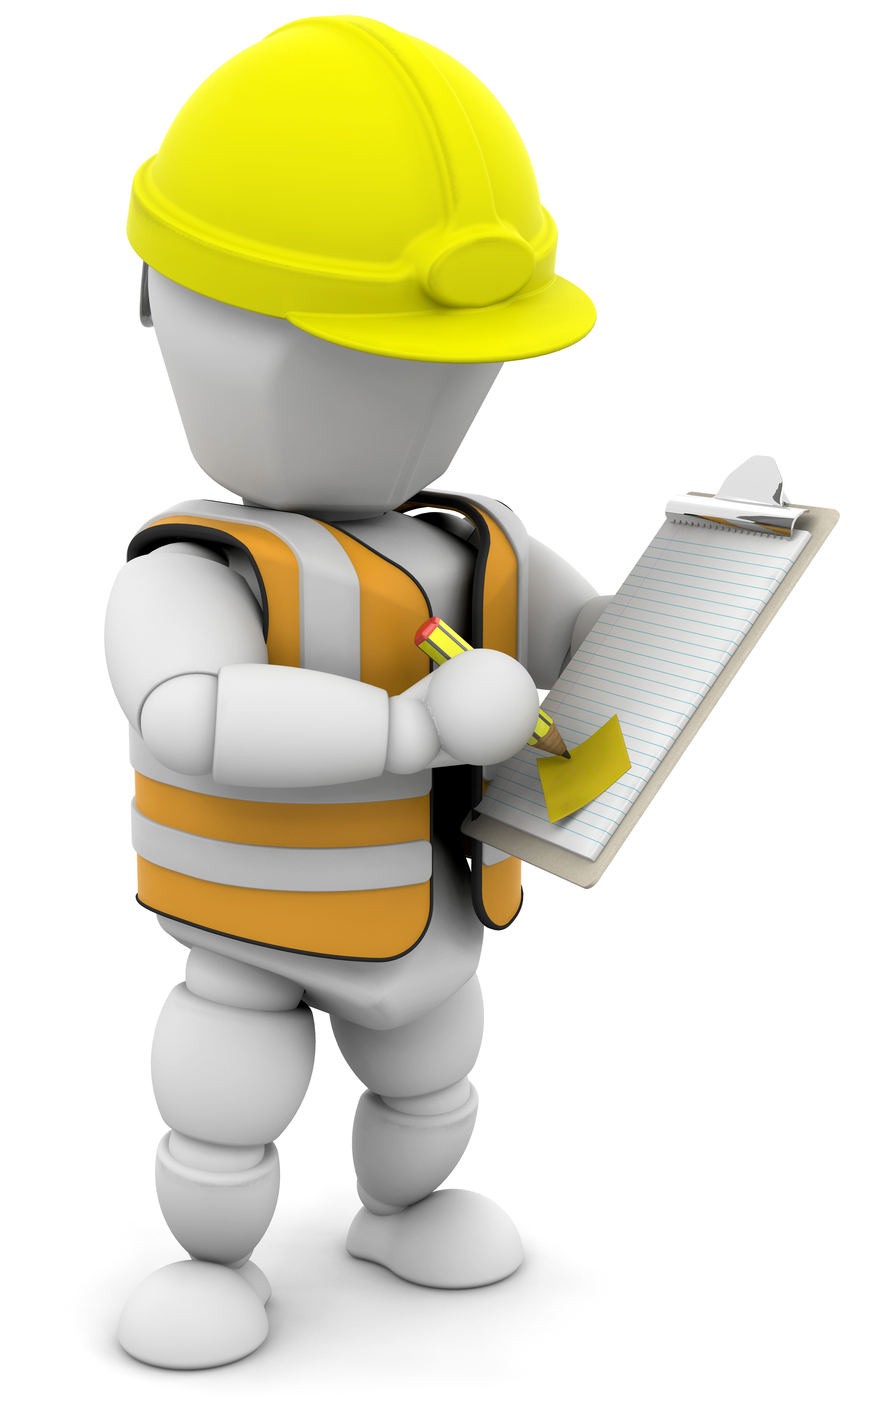 Clipart Illustration Of A White Character In A Hardhat And Vest